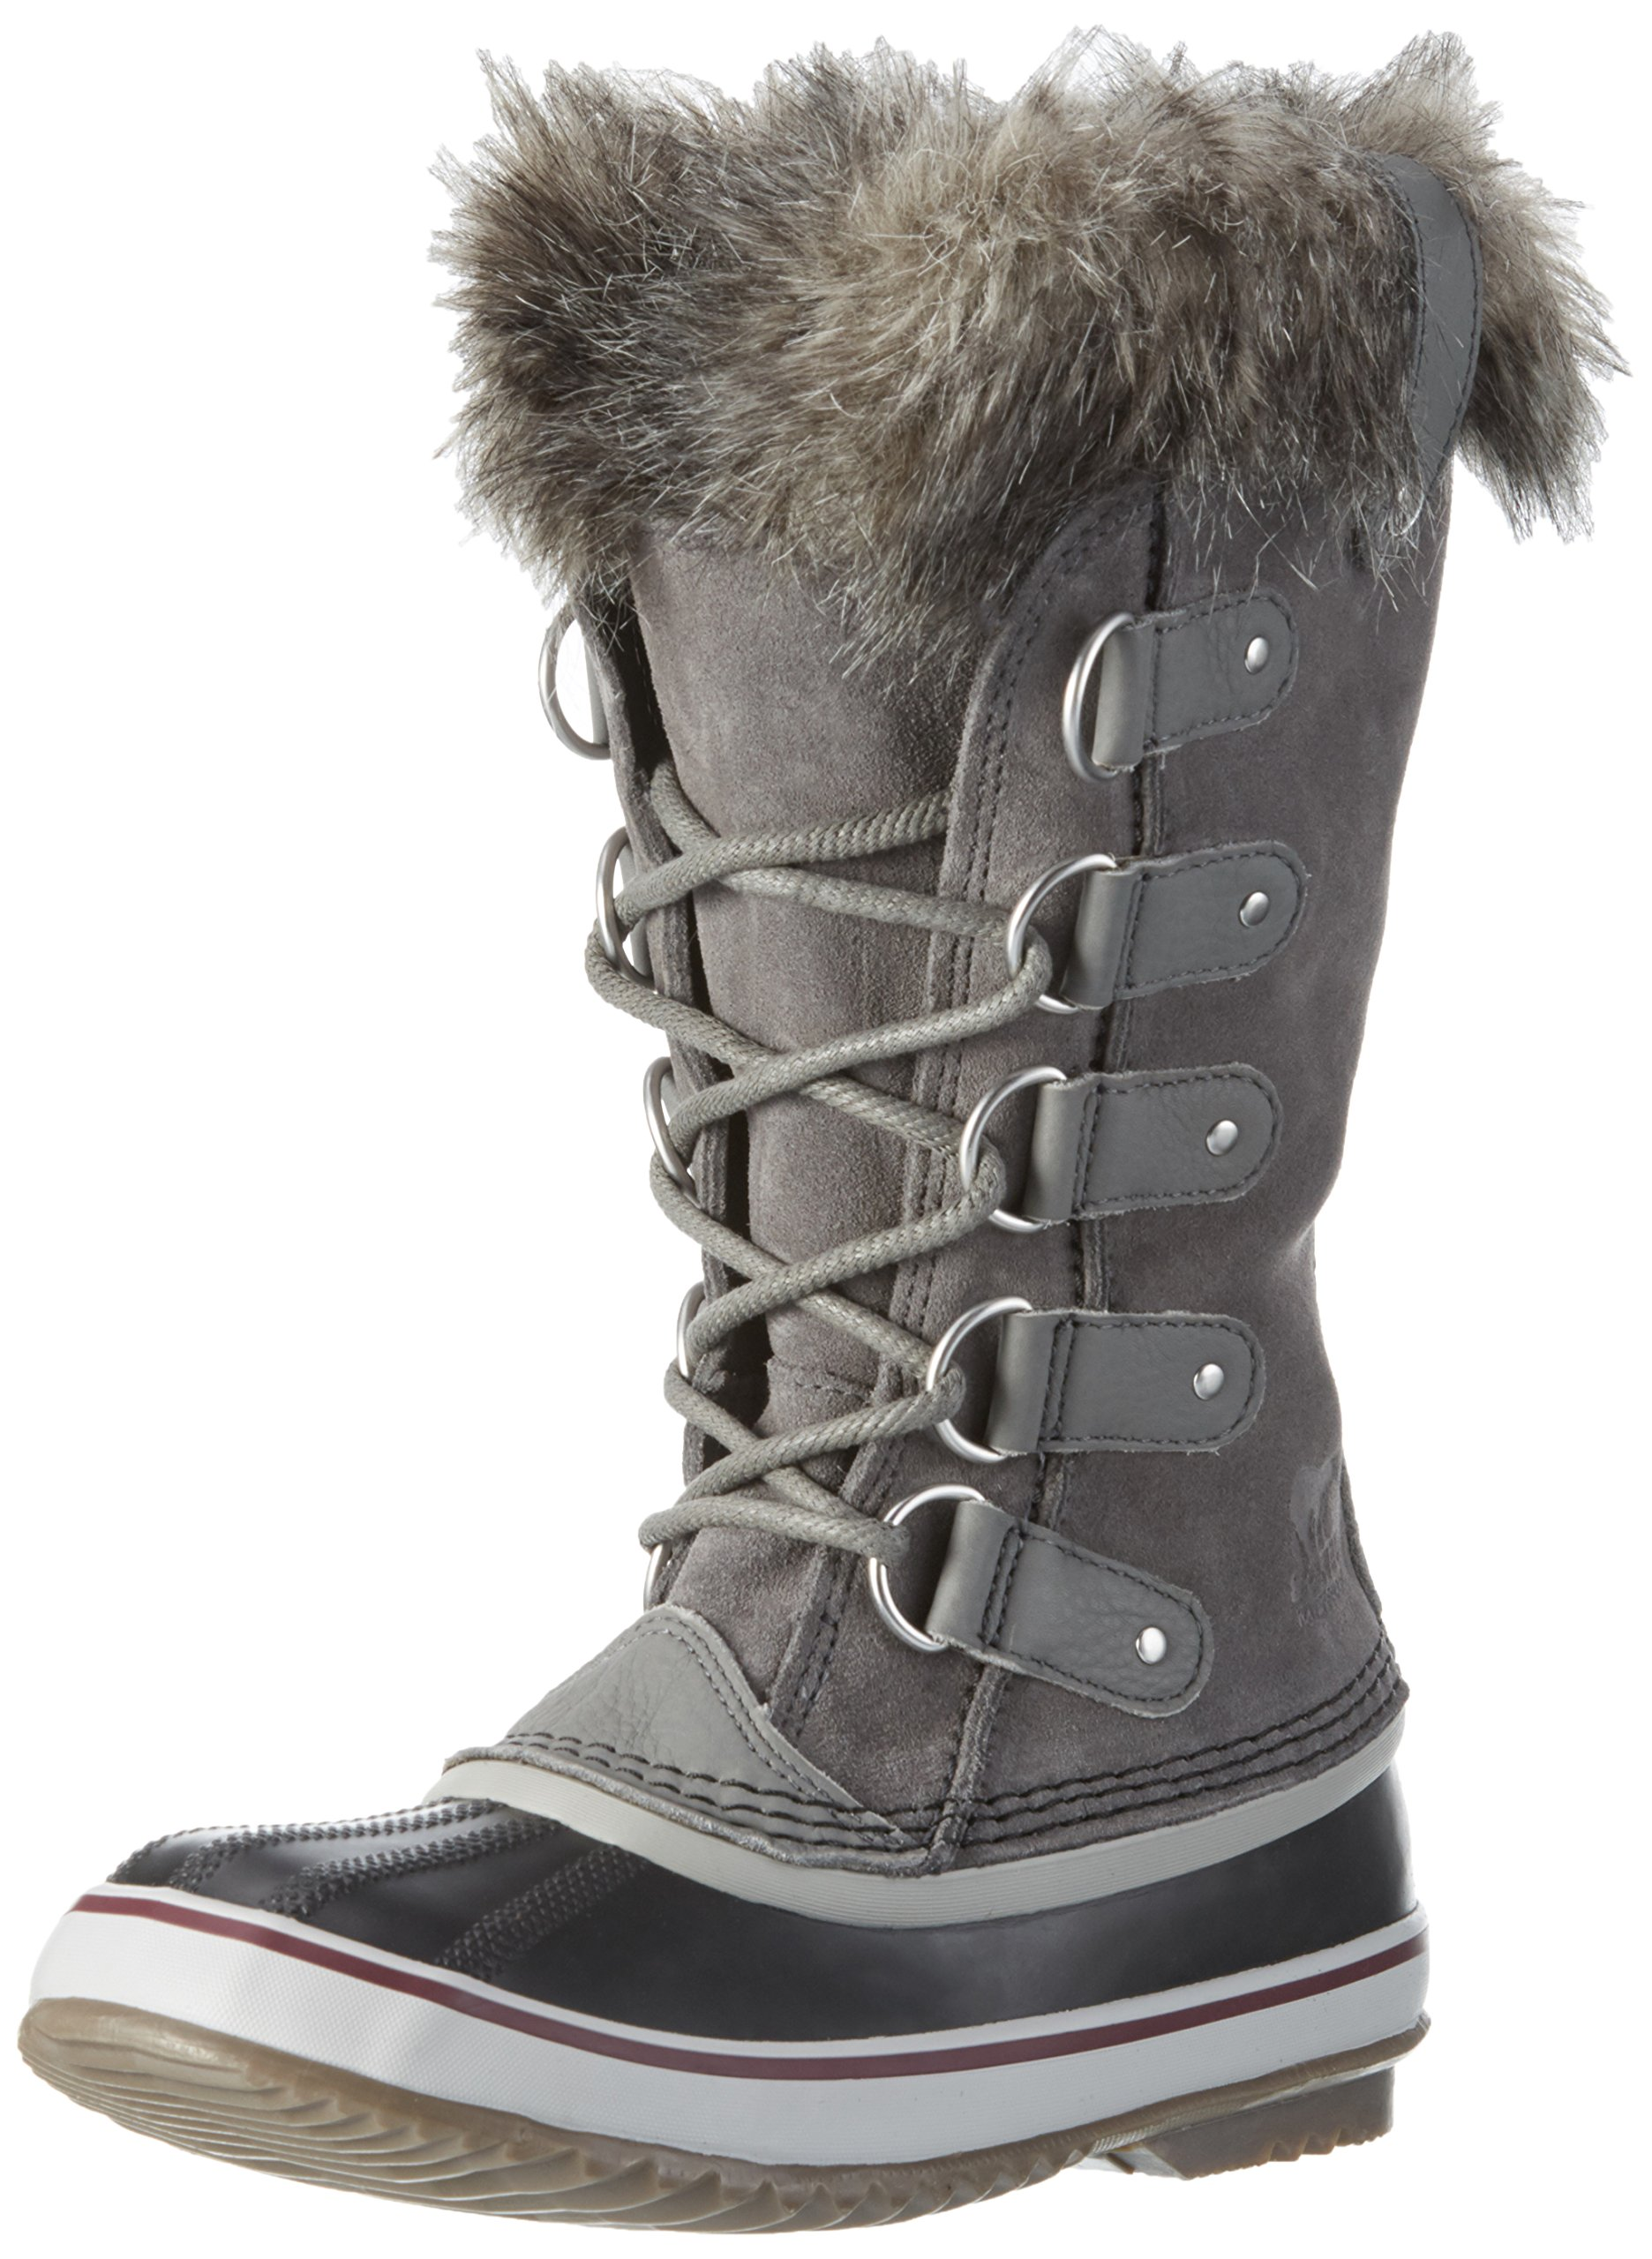 SOREL Women's Joan Of Arctic Boot,Quarry/Black,8 B(M) US